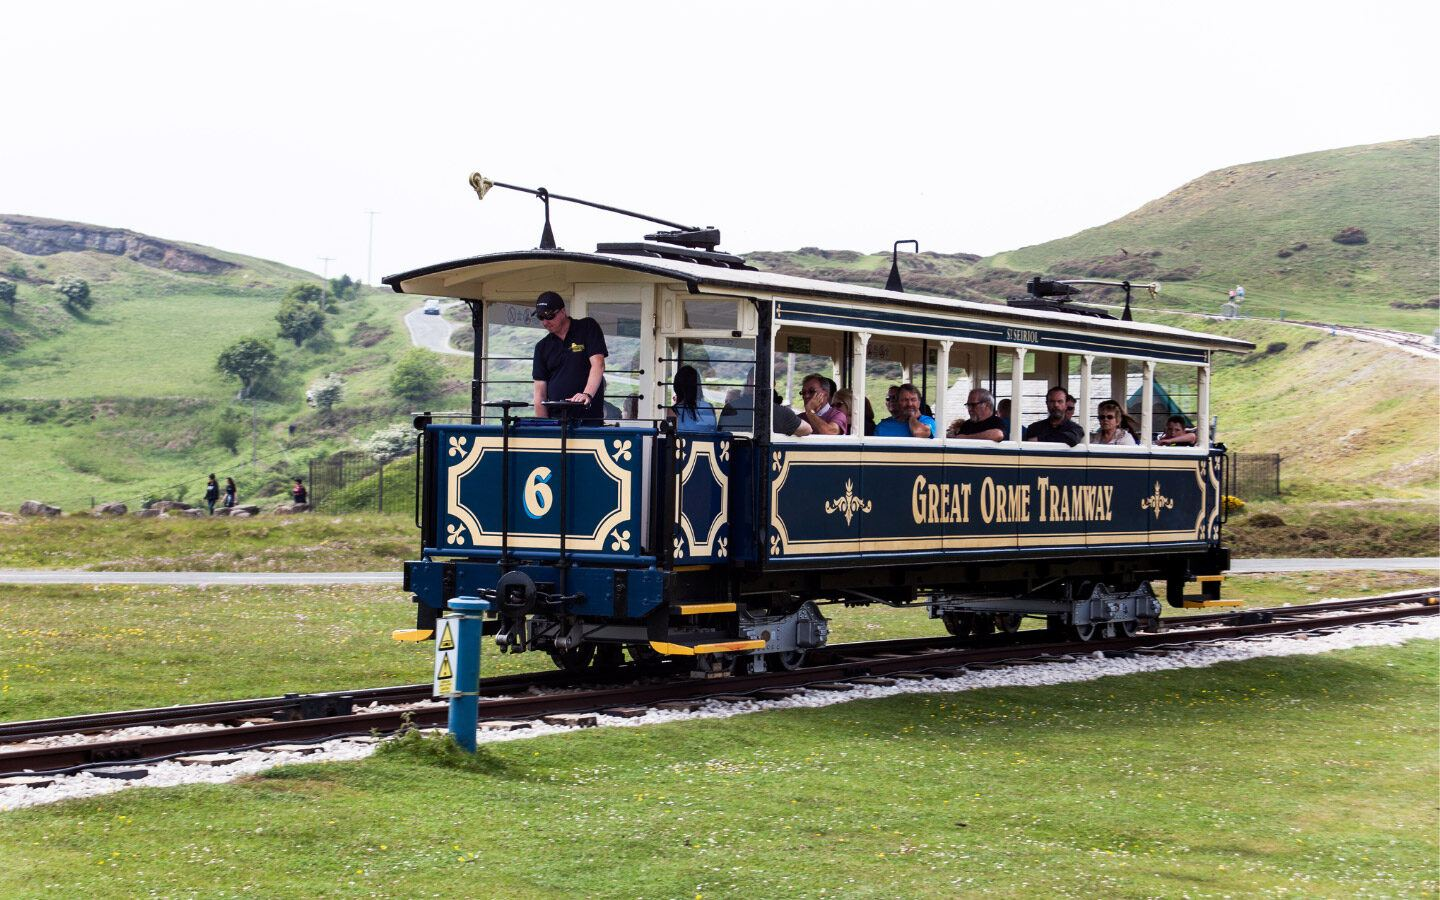 Llandudno's Great Orme Tramway for visiting Wales by train